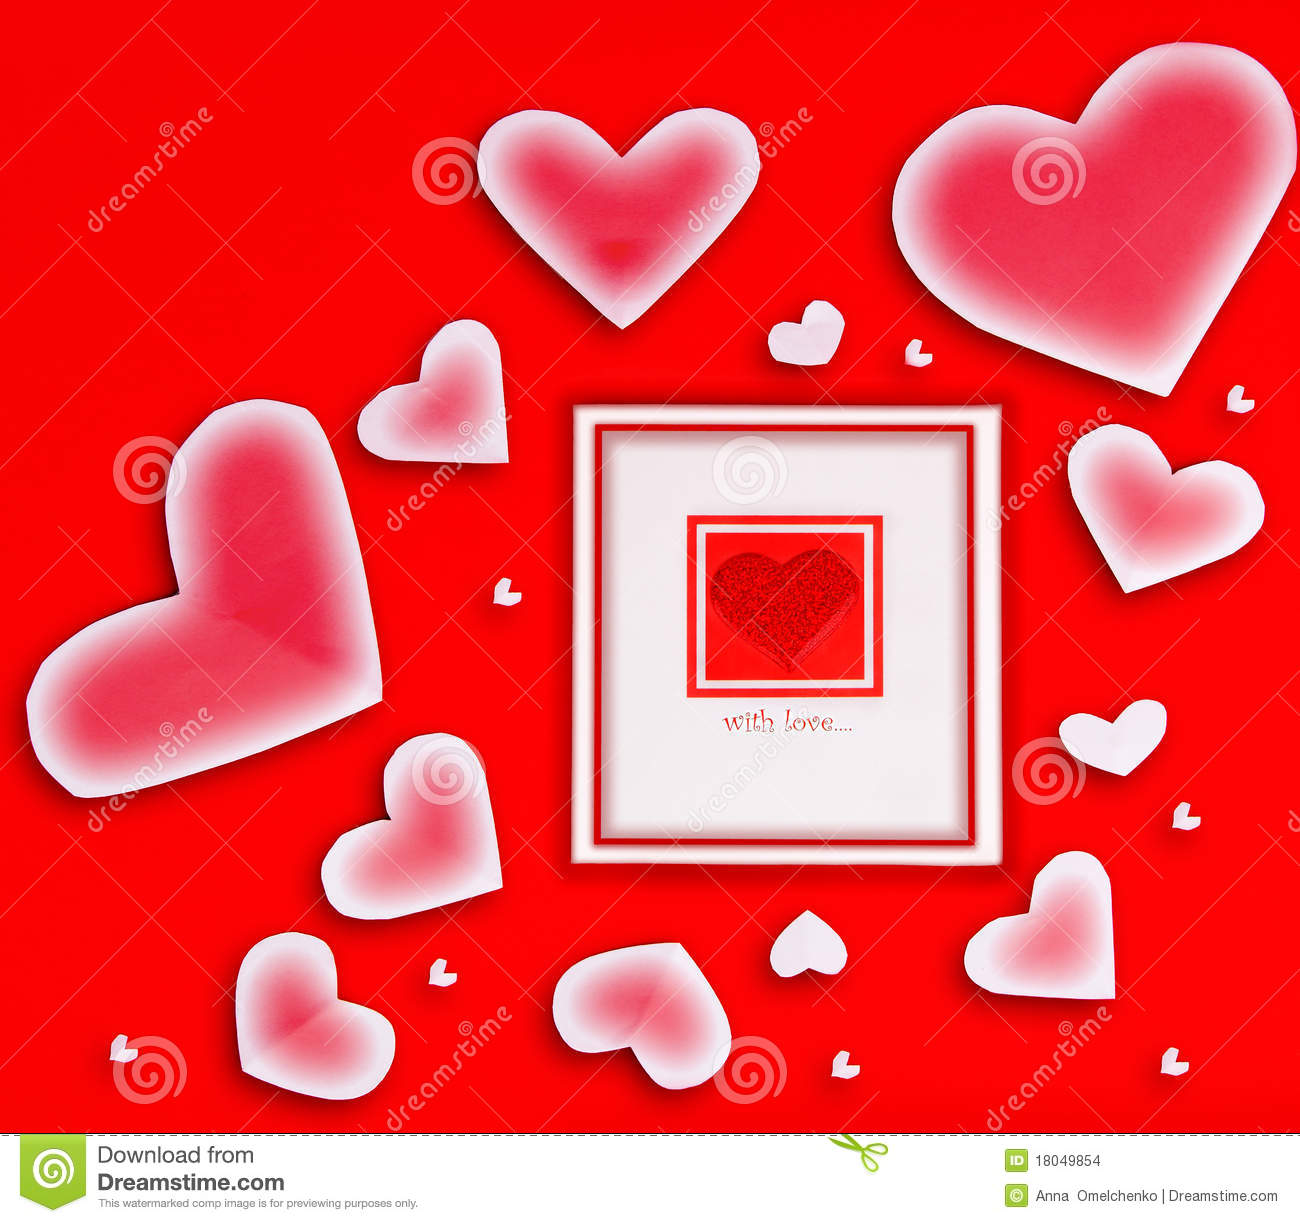 Blank card with red heart stock photo. Image of decoration ...